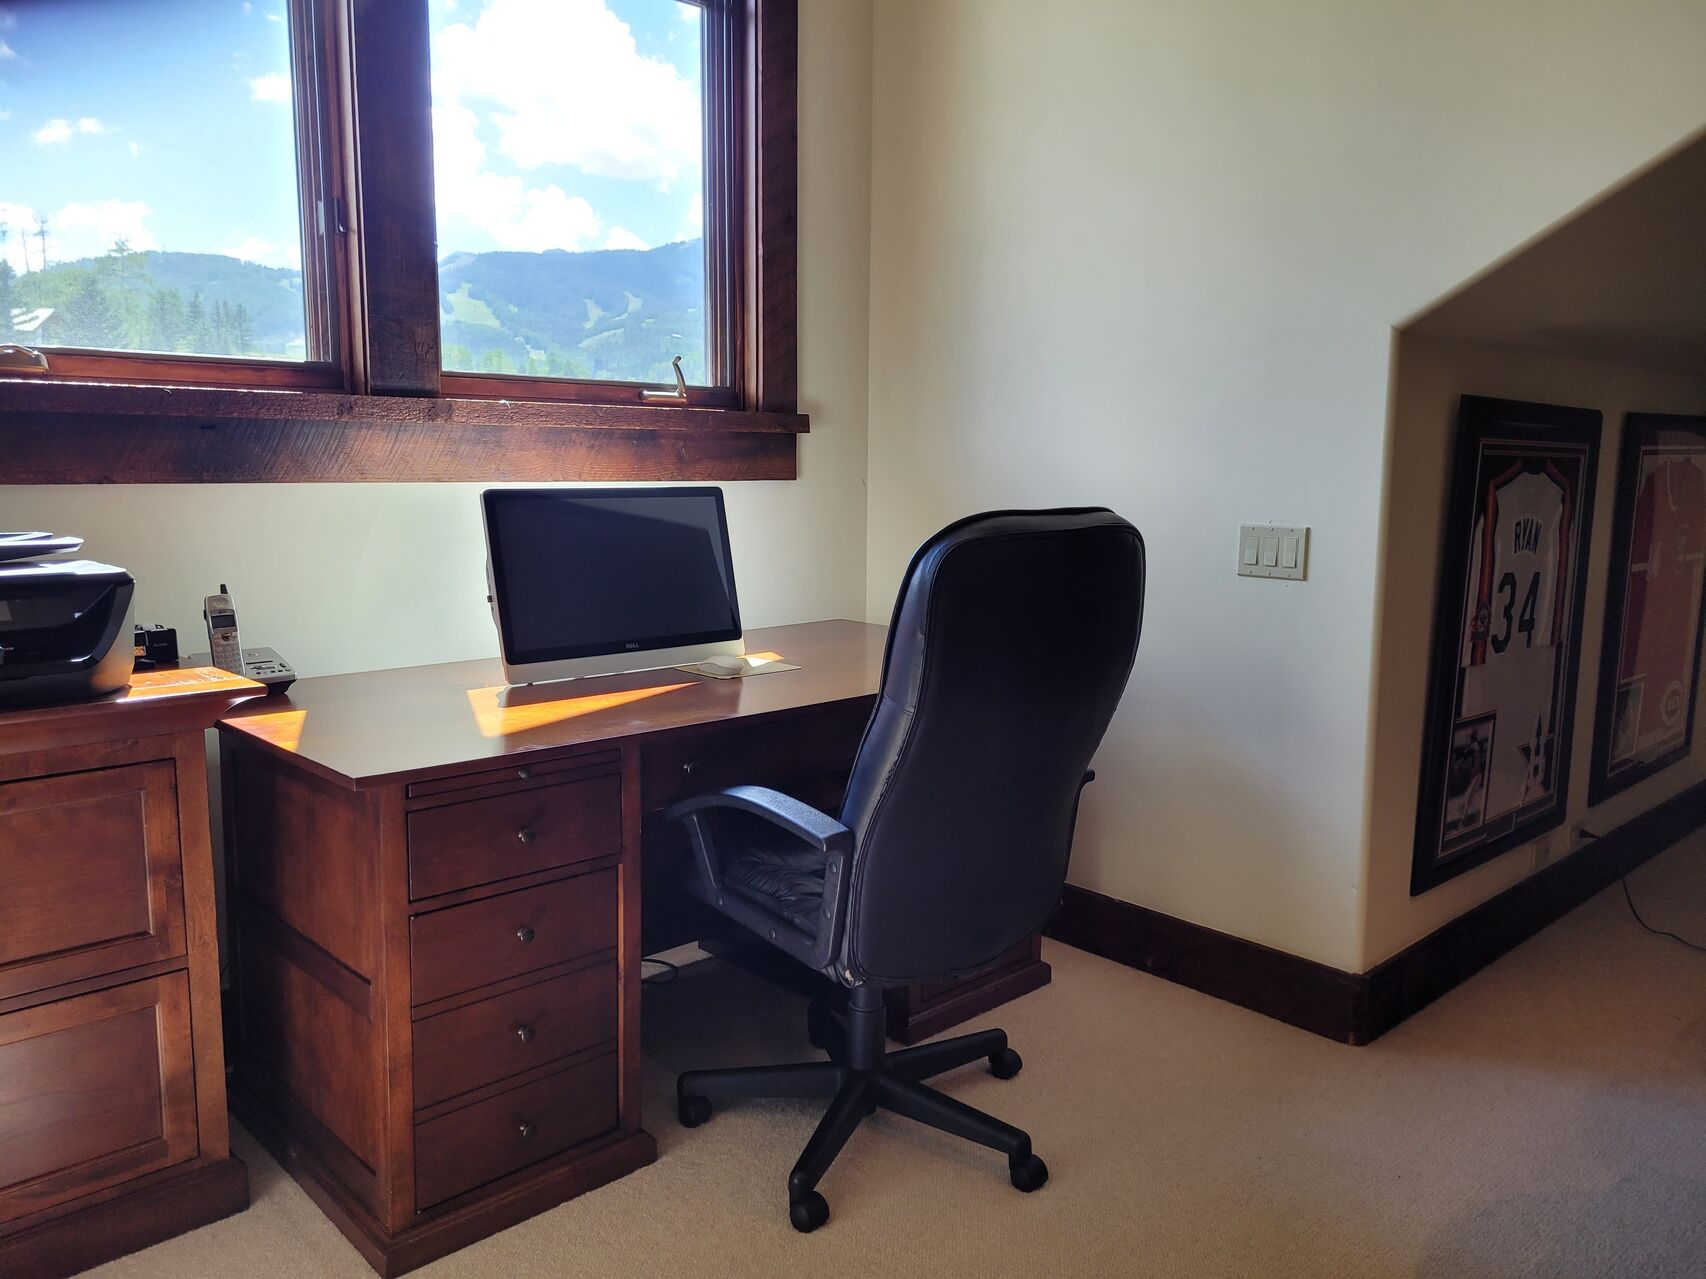 Office with wood desk and office chairs